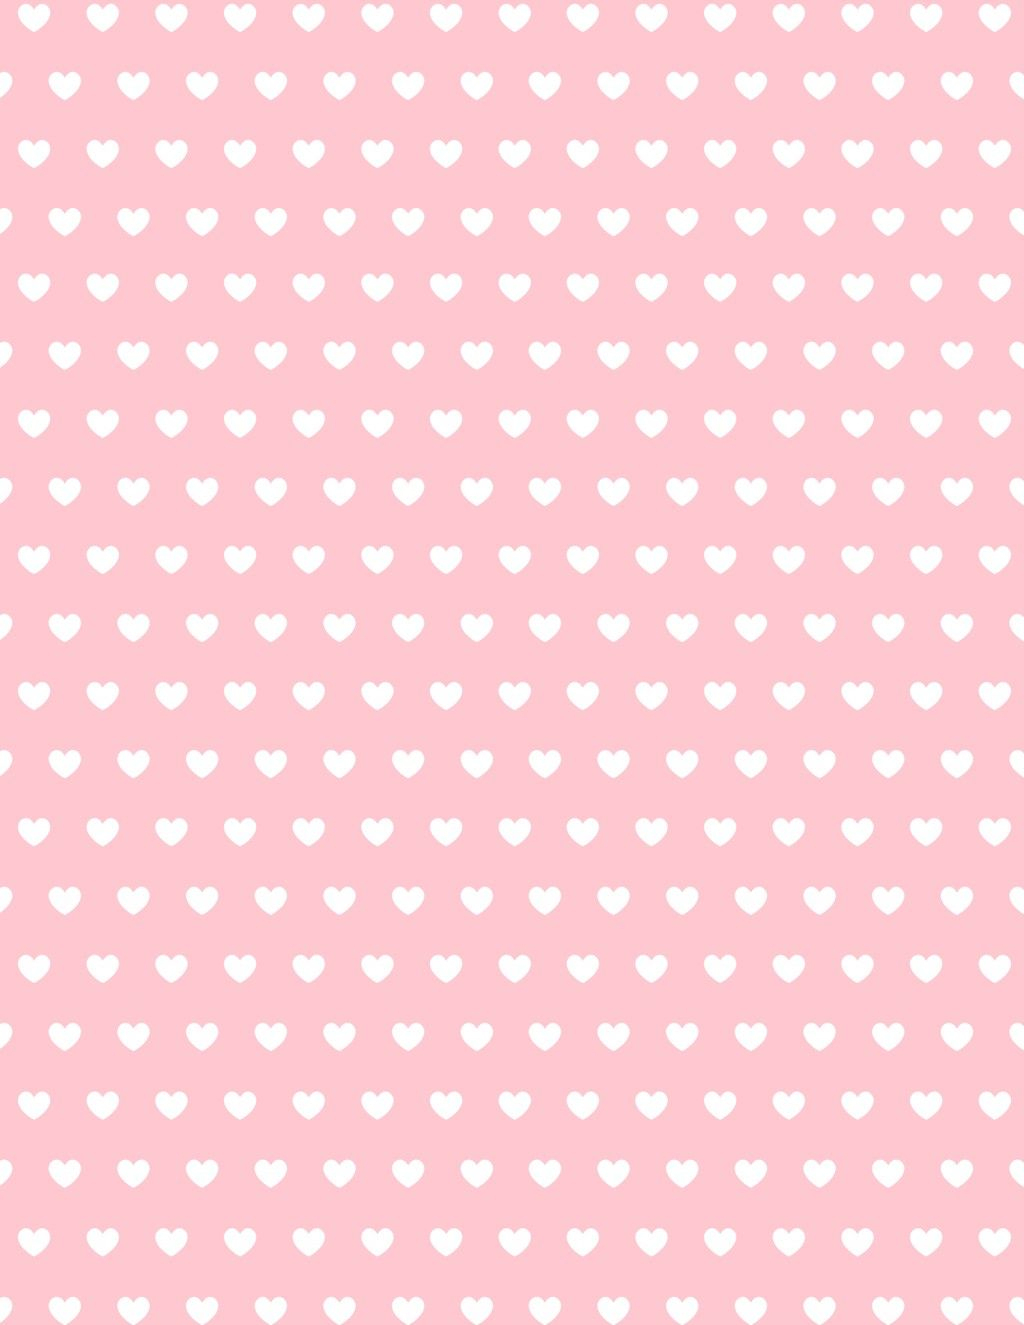 Free Valentine Hearts Scrapbook Paper | Perfect Student - Free Printable Heart Designs